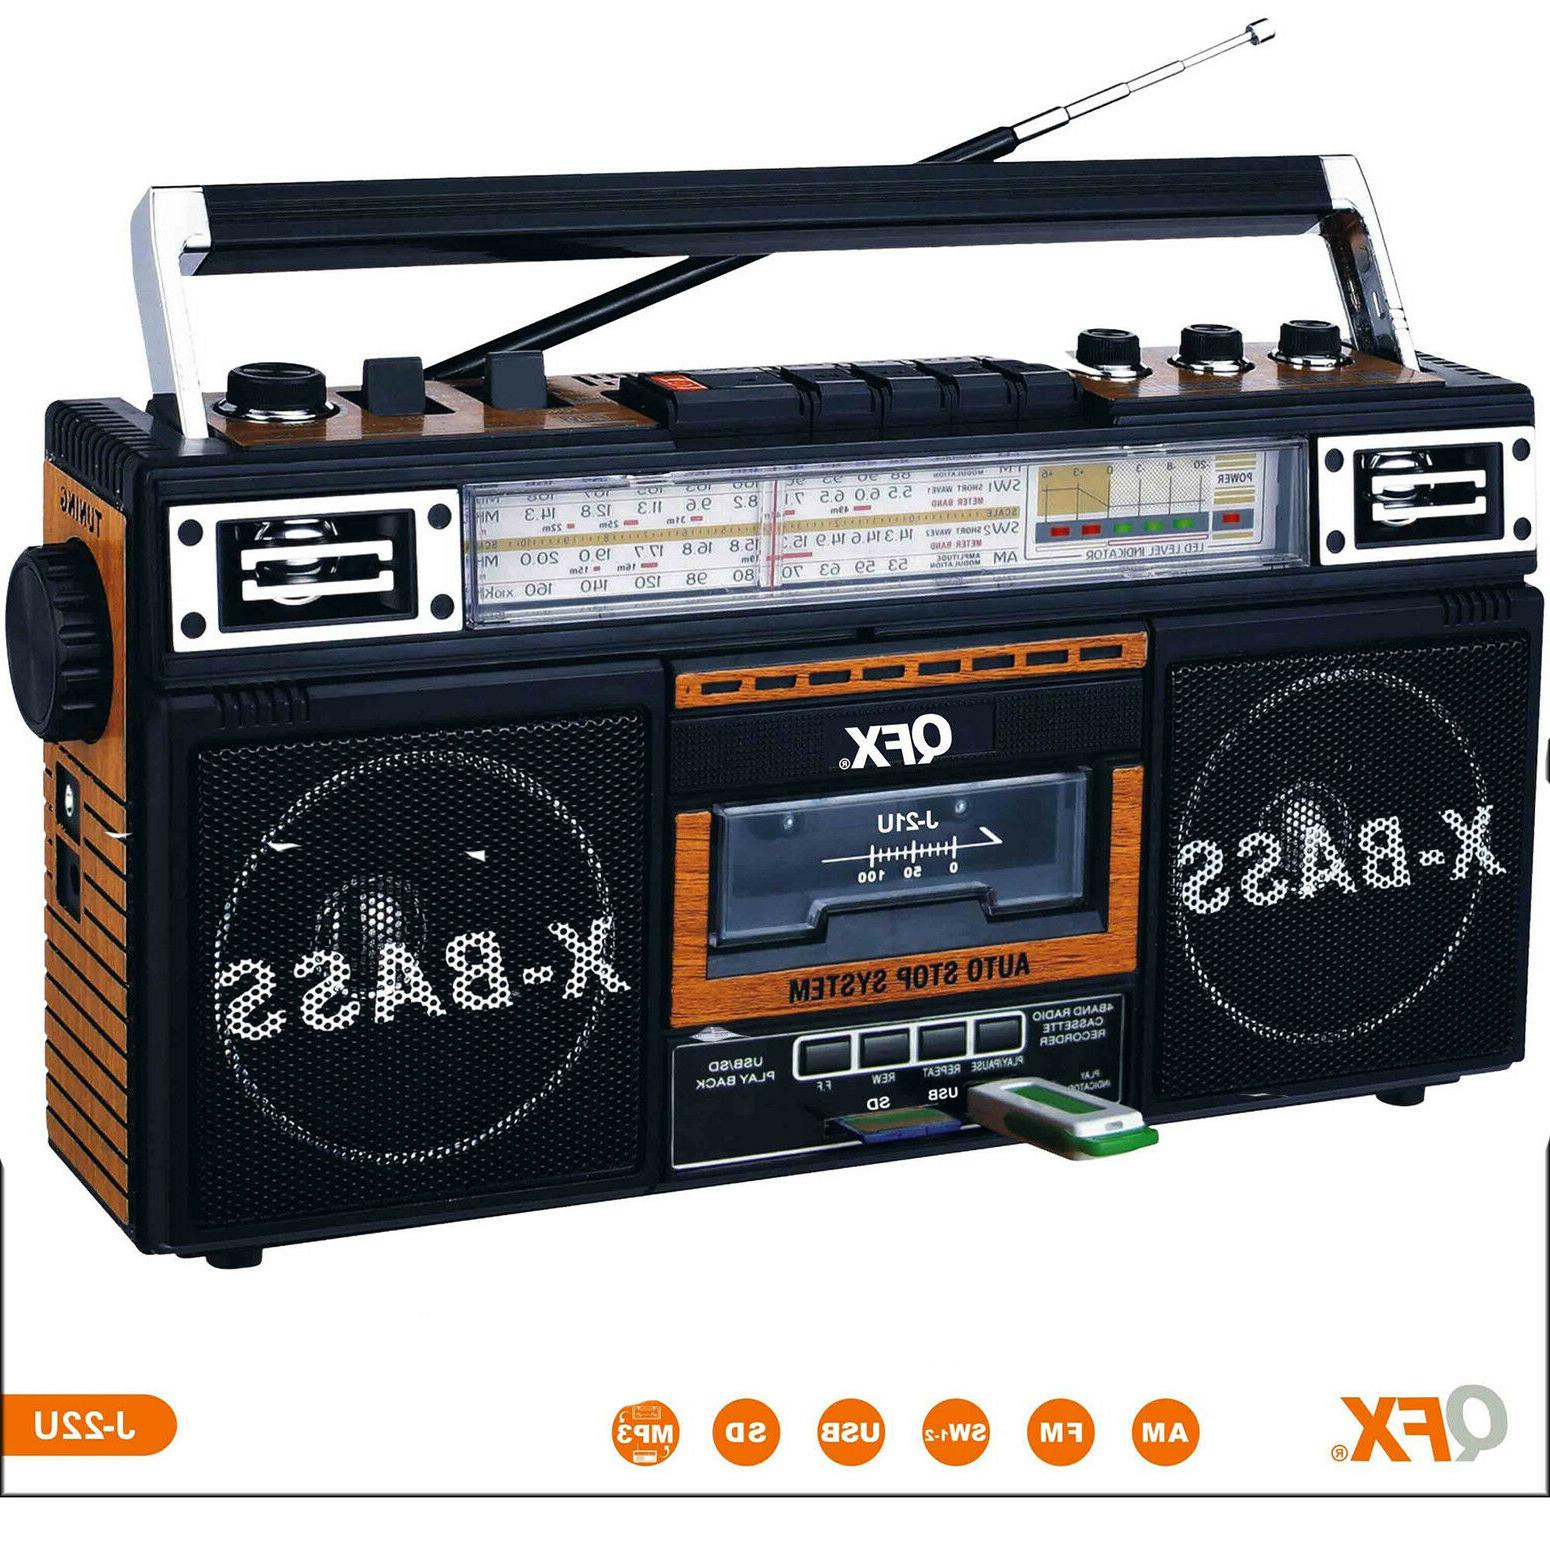 Portable Retro Boombox Radio Recorder Player USB/SD/AUX Cass